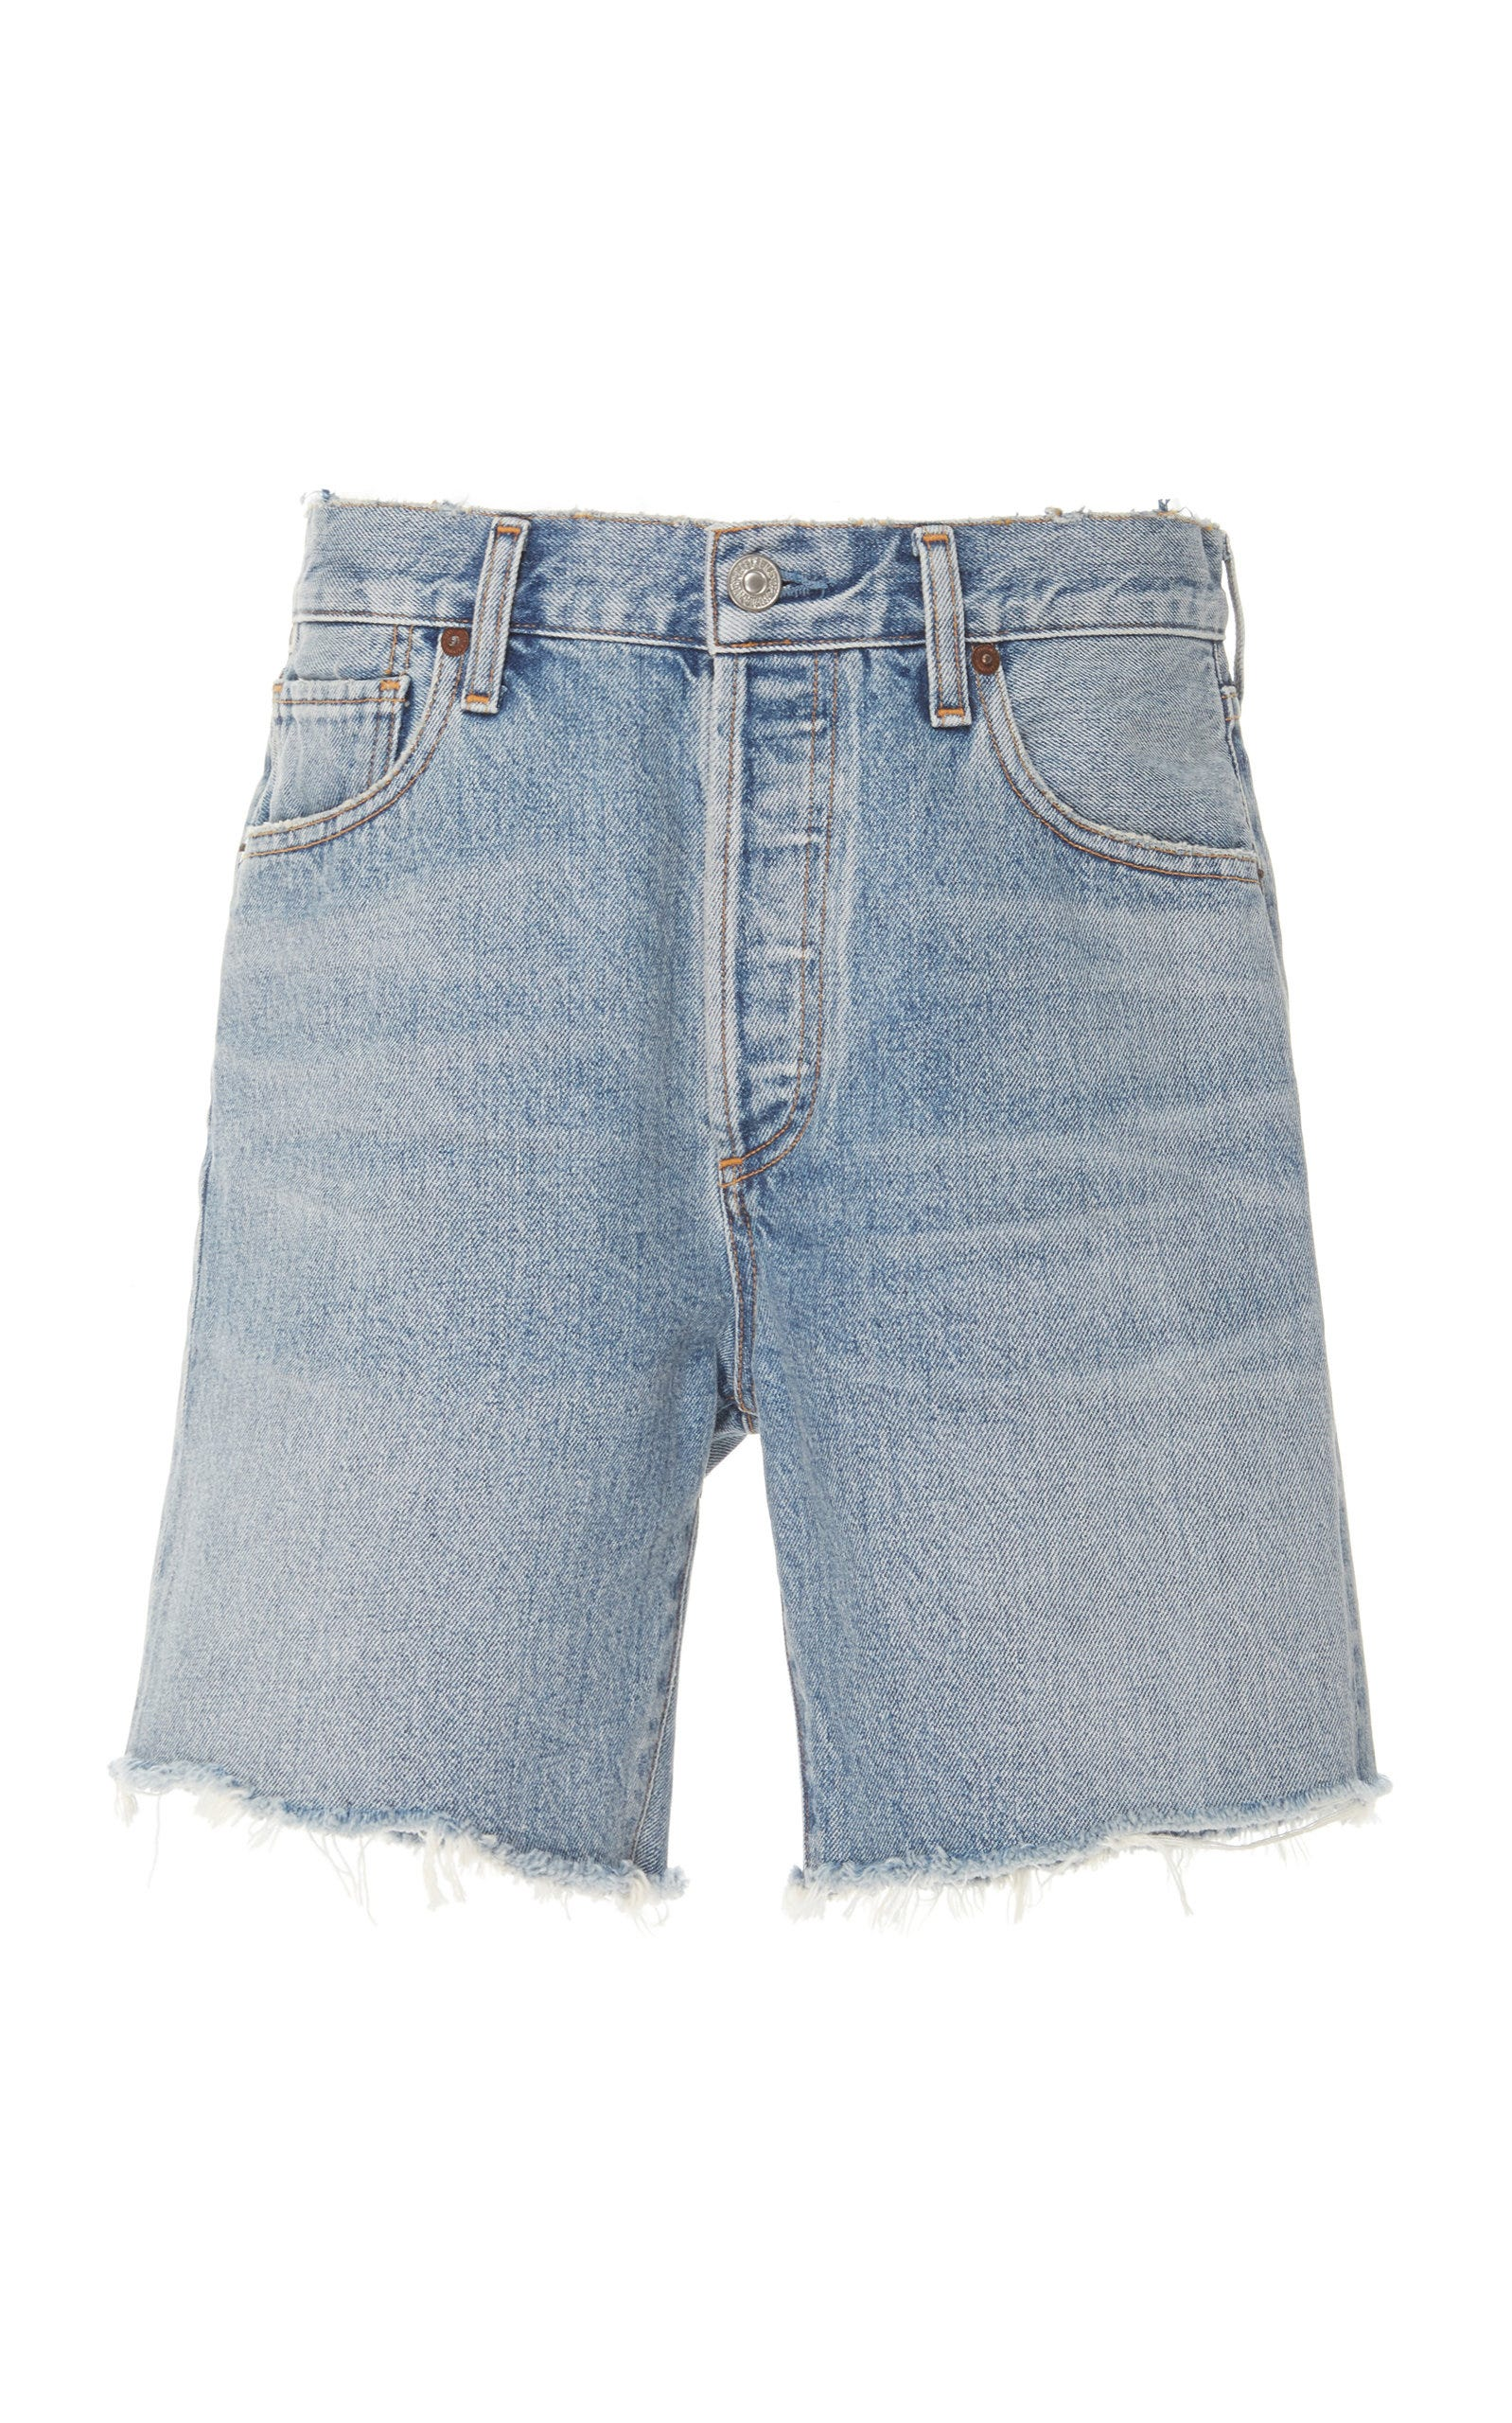 b7be827b4 Denim Jean Shorts In Every Style To Wear This Summer